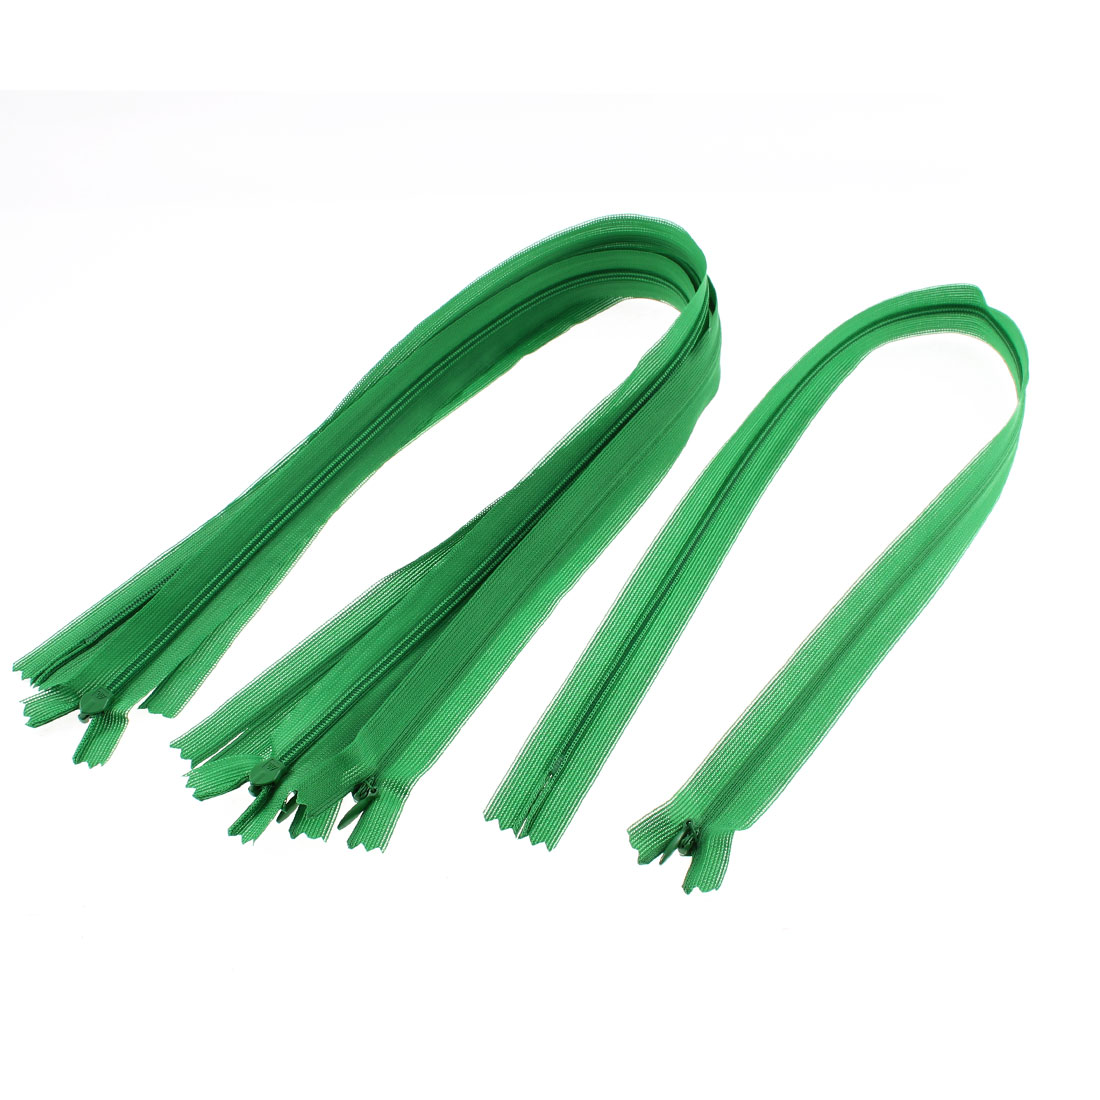 Dress Pants Closed End Nylon Zippers Tailor Sewing Craft Tool Green 55cm 5 Pcs